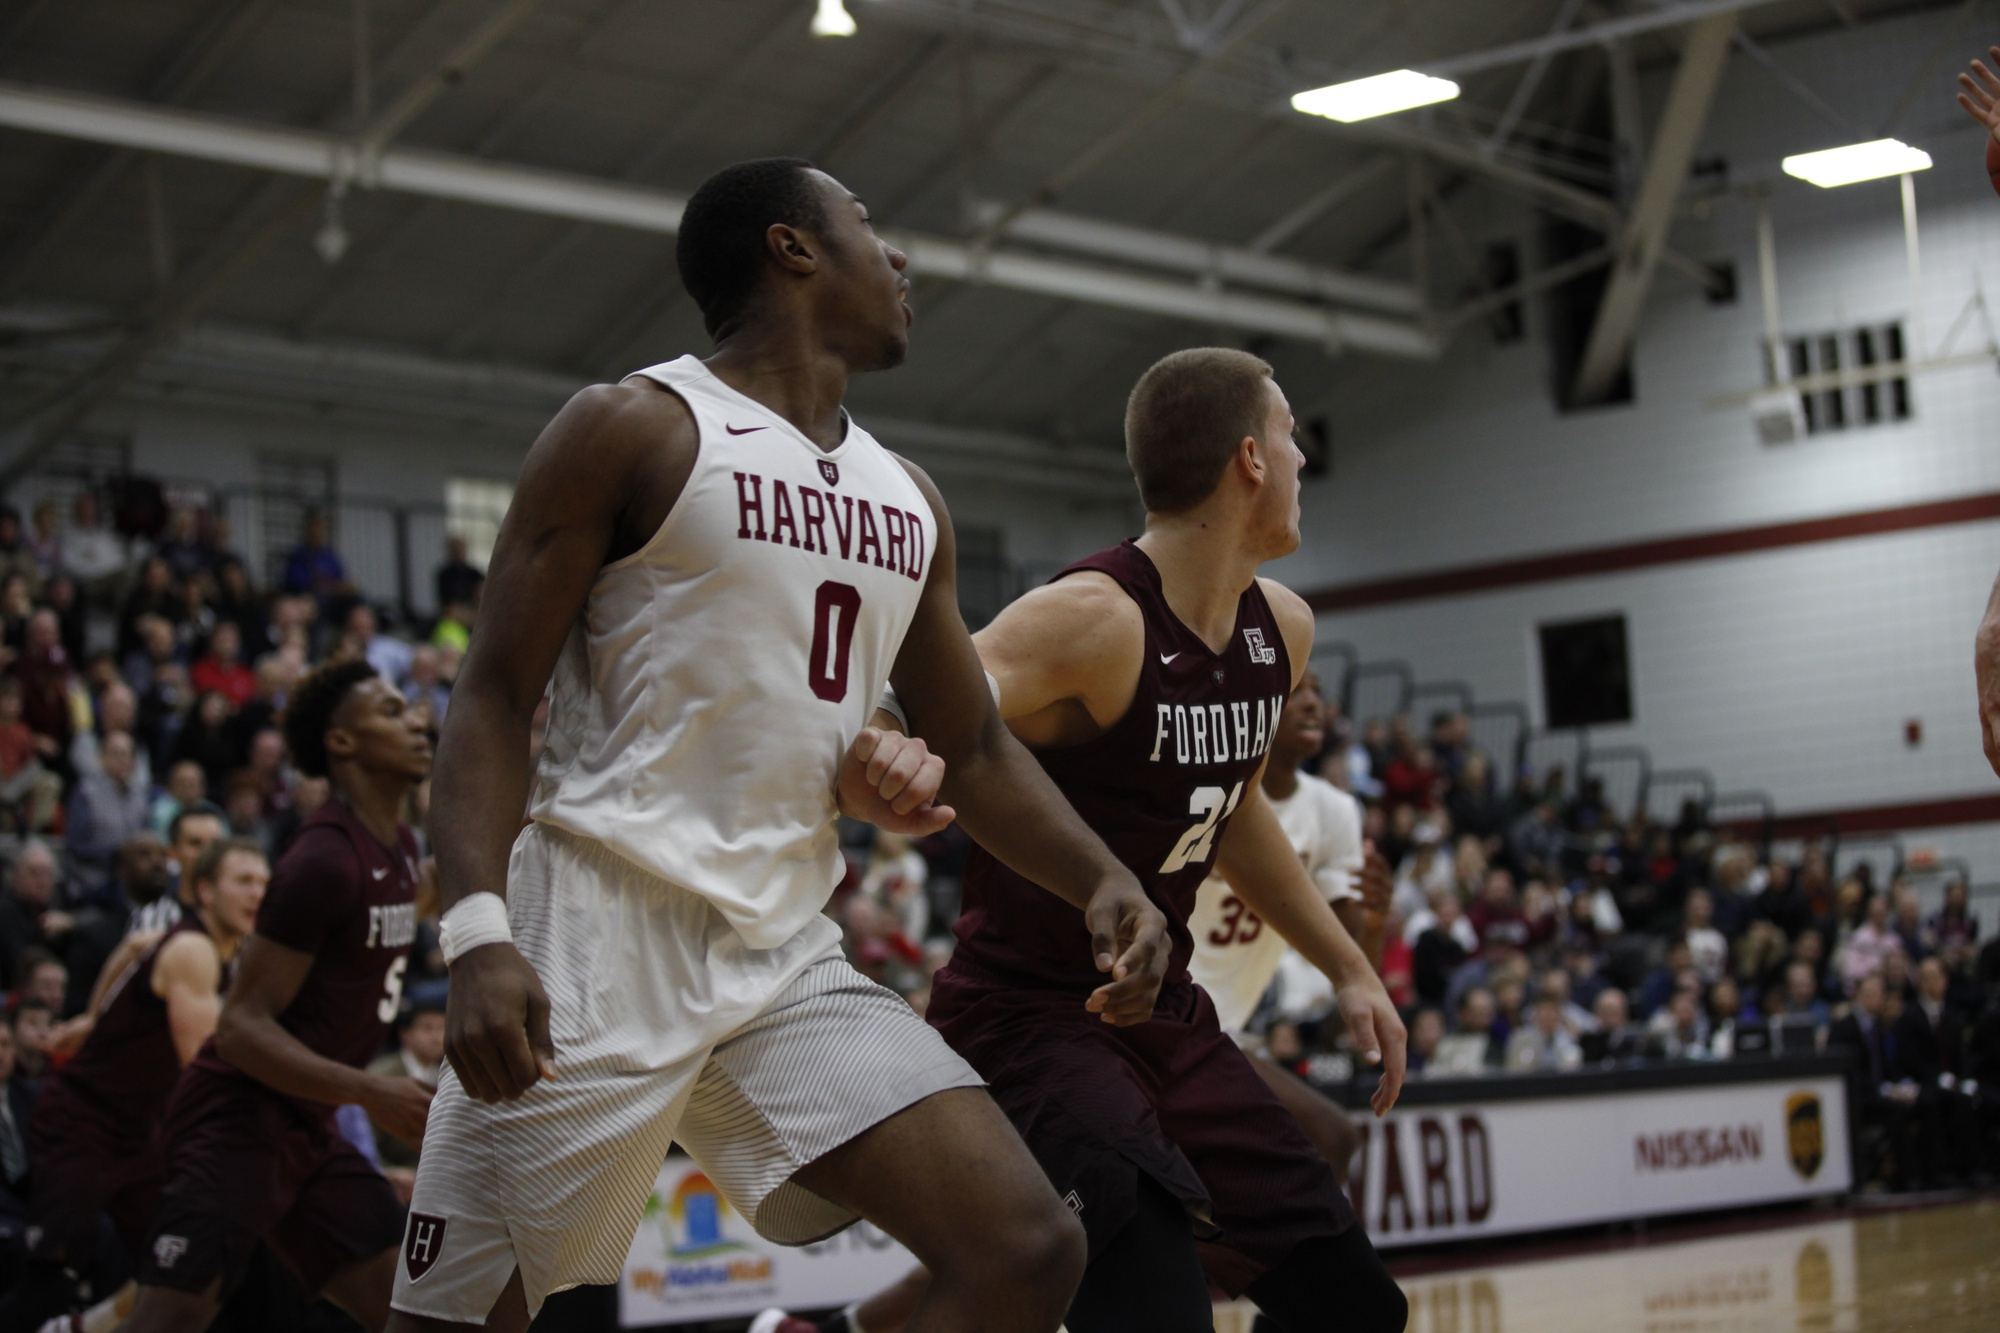 Freshman Chris Lewis, pictured here against Fordham, was selected as this week's Ivy League Rookie of the Week